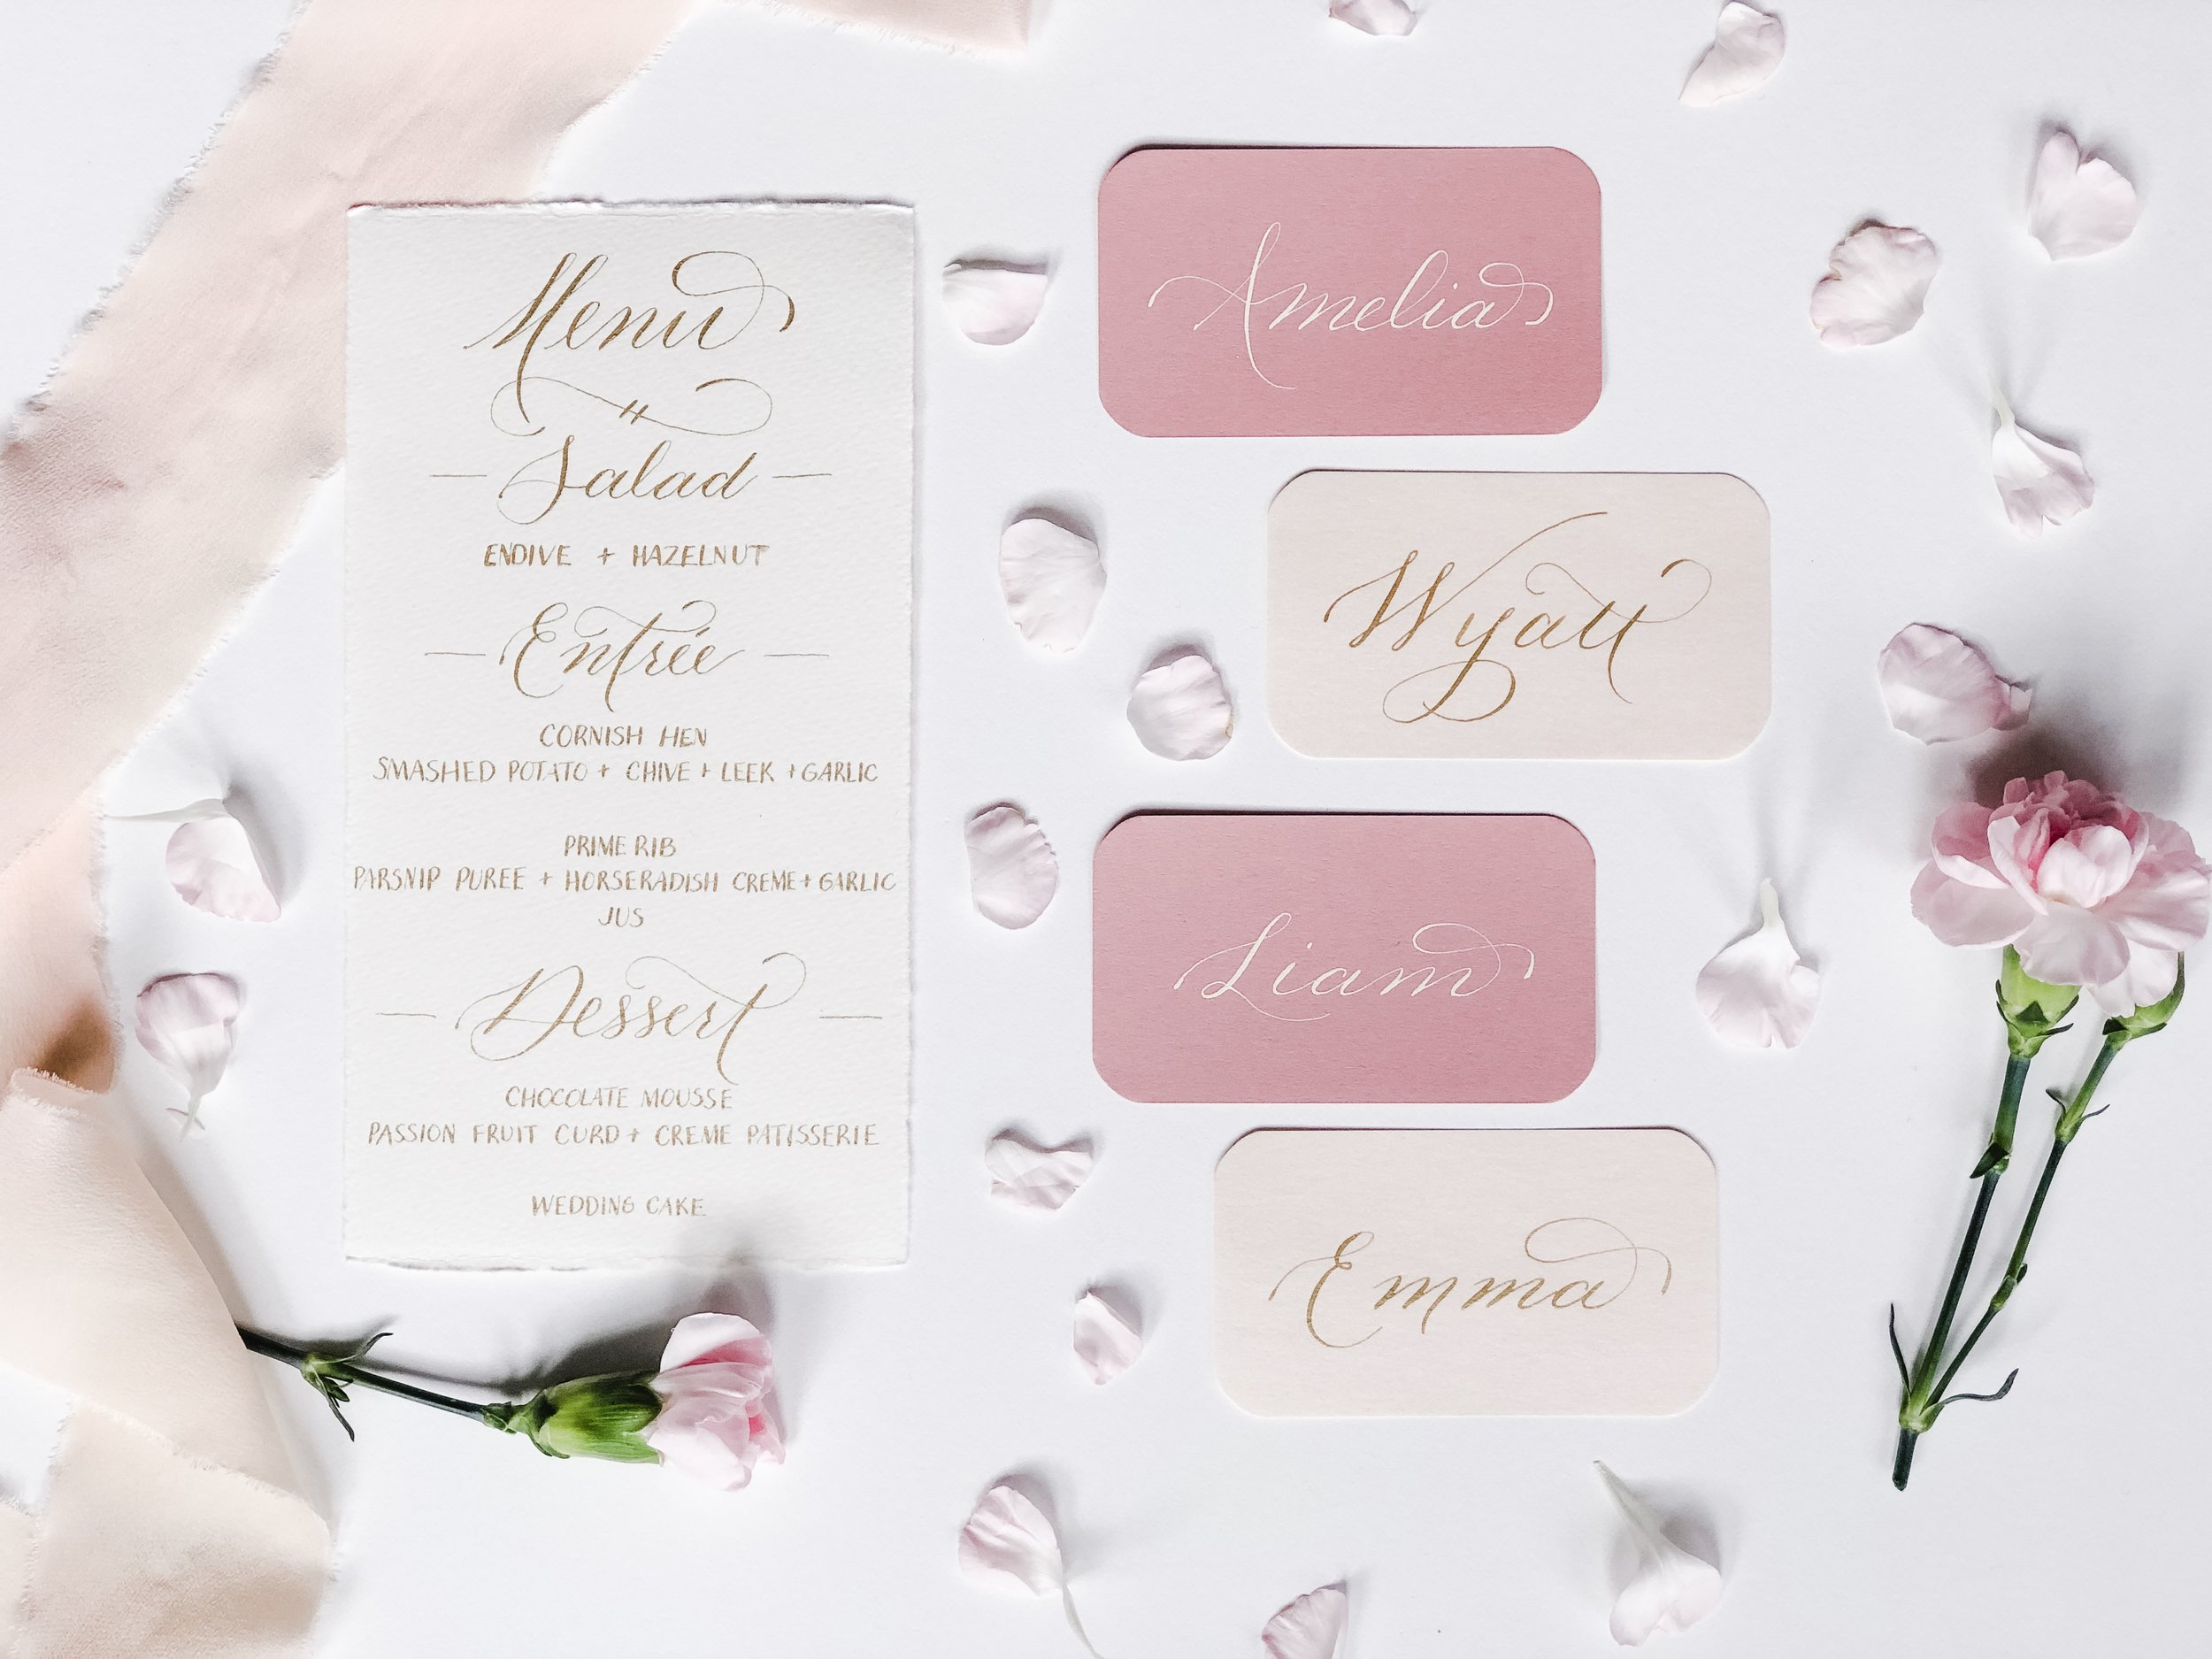 Menu and Place Cards